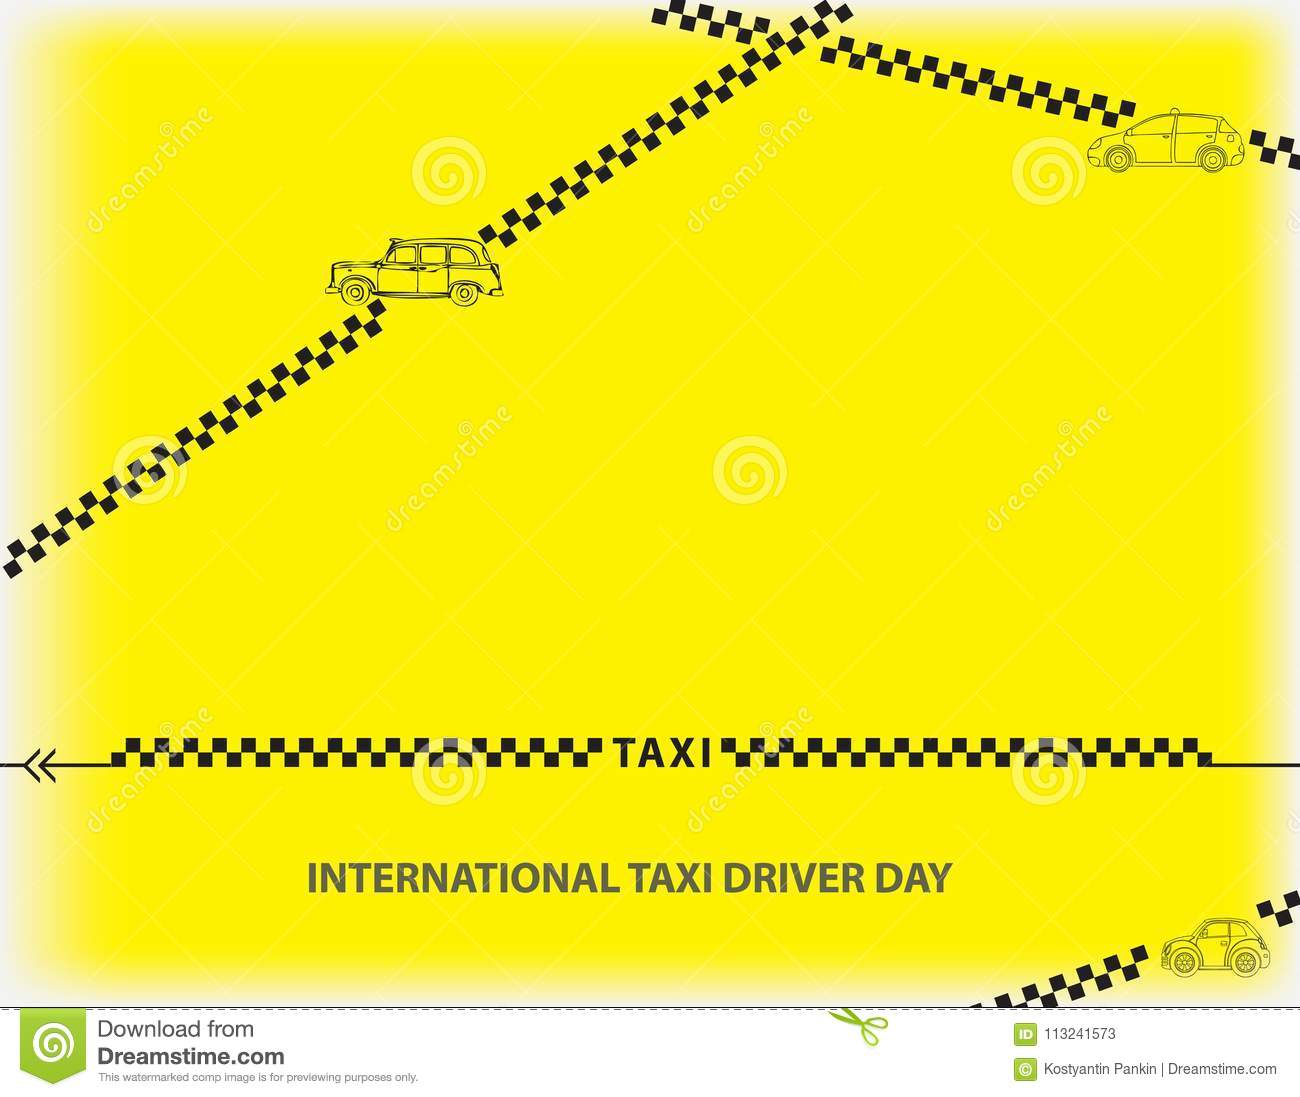 International Taxi Driver Day Stock Vector - Illustration of